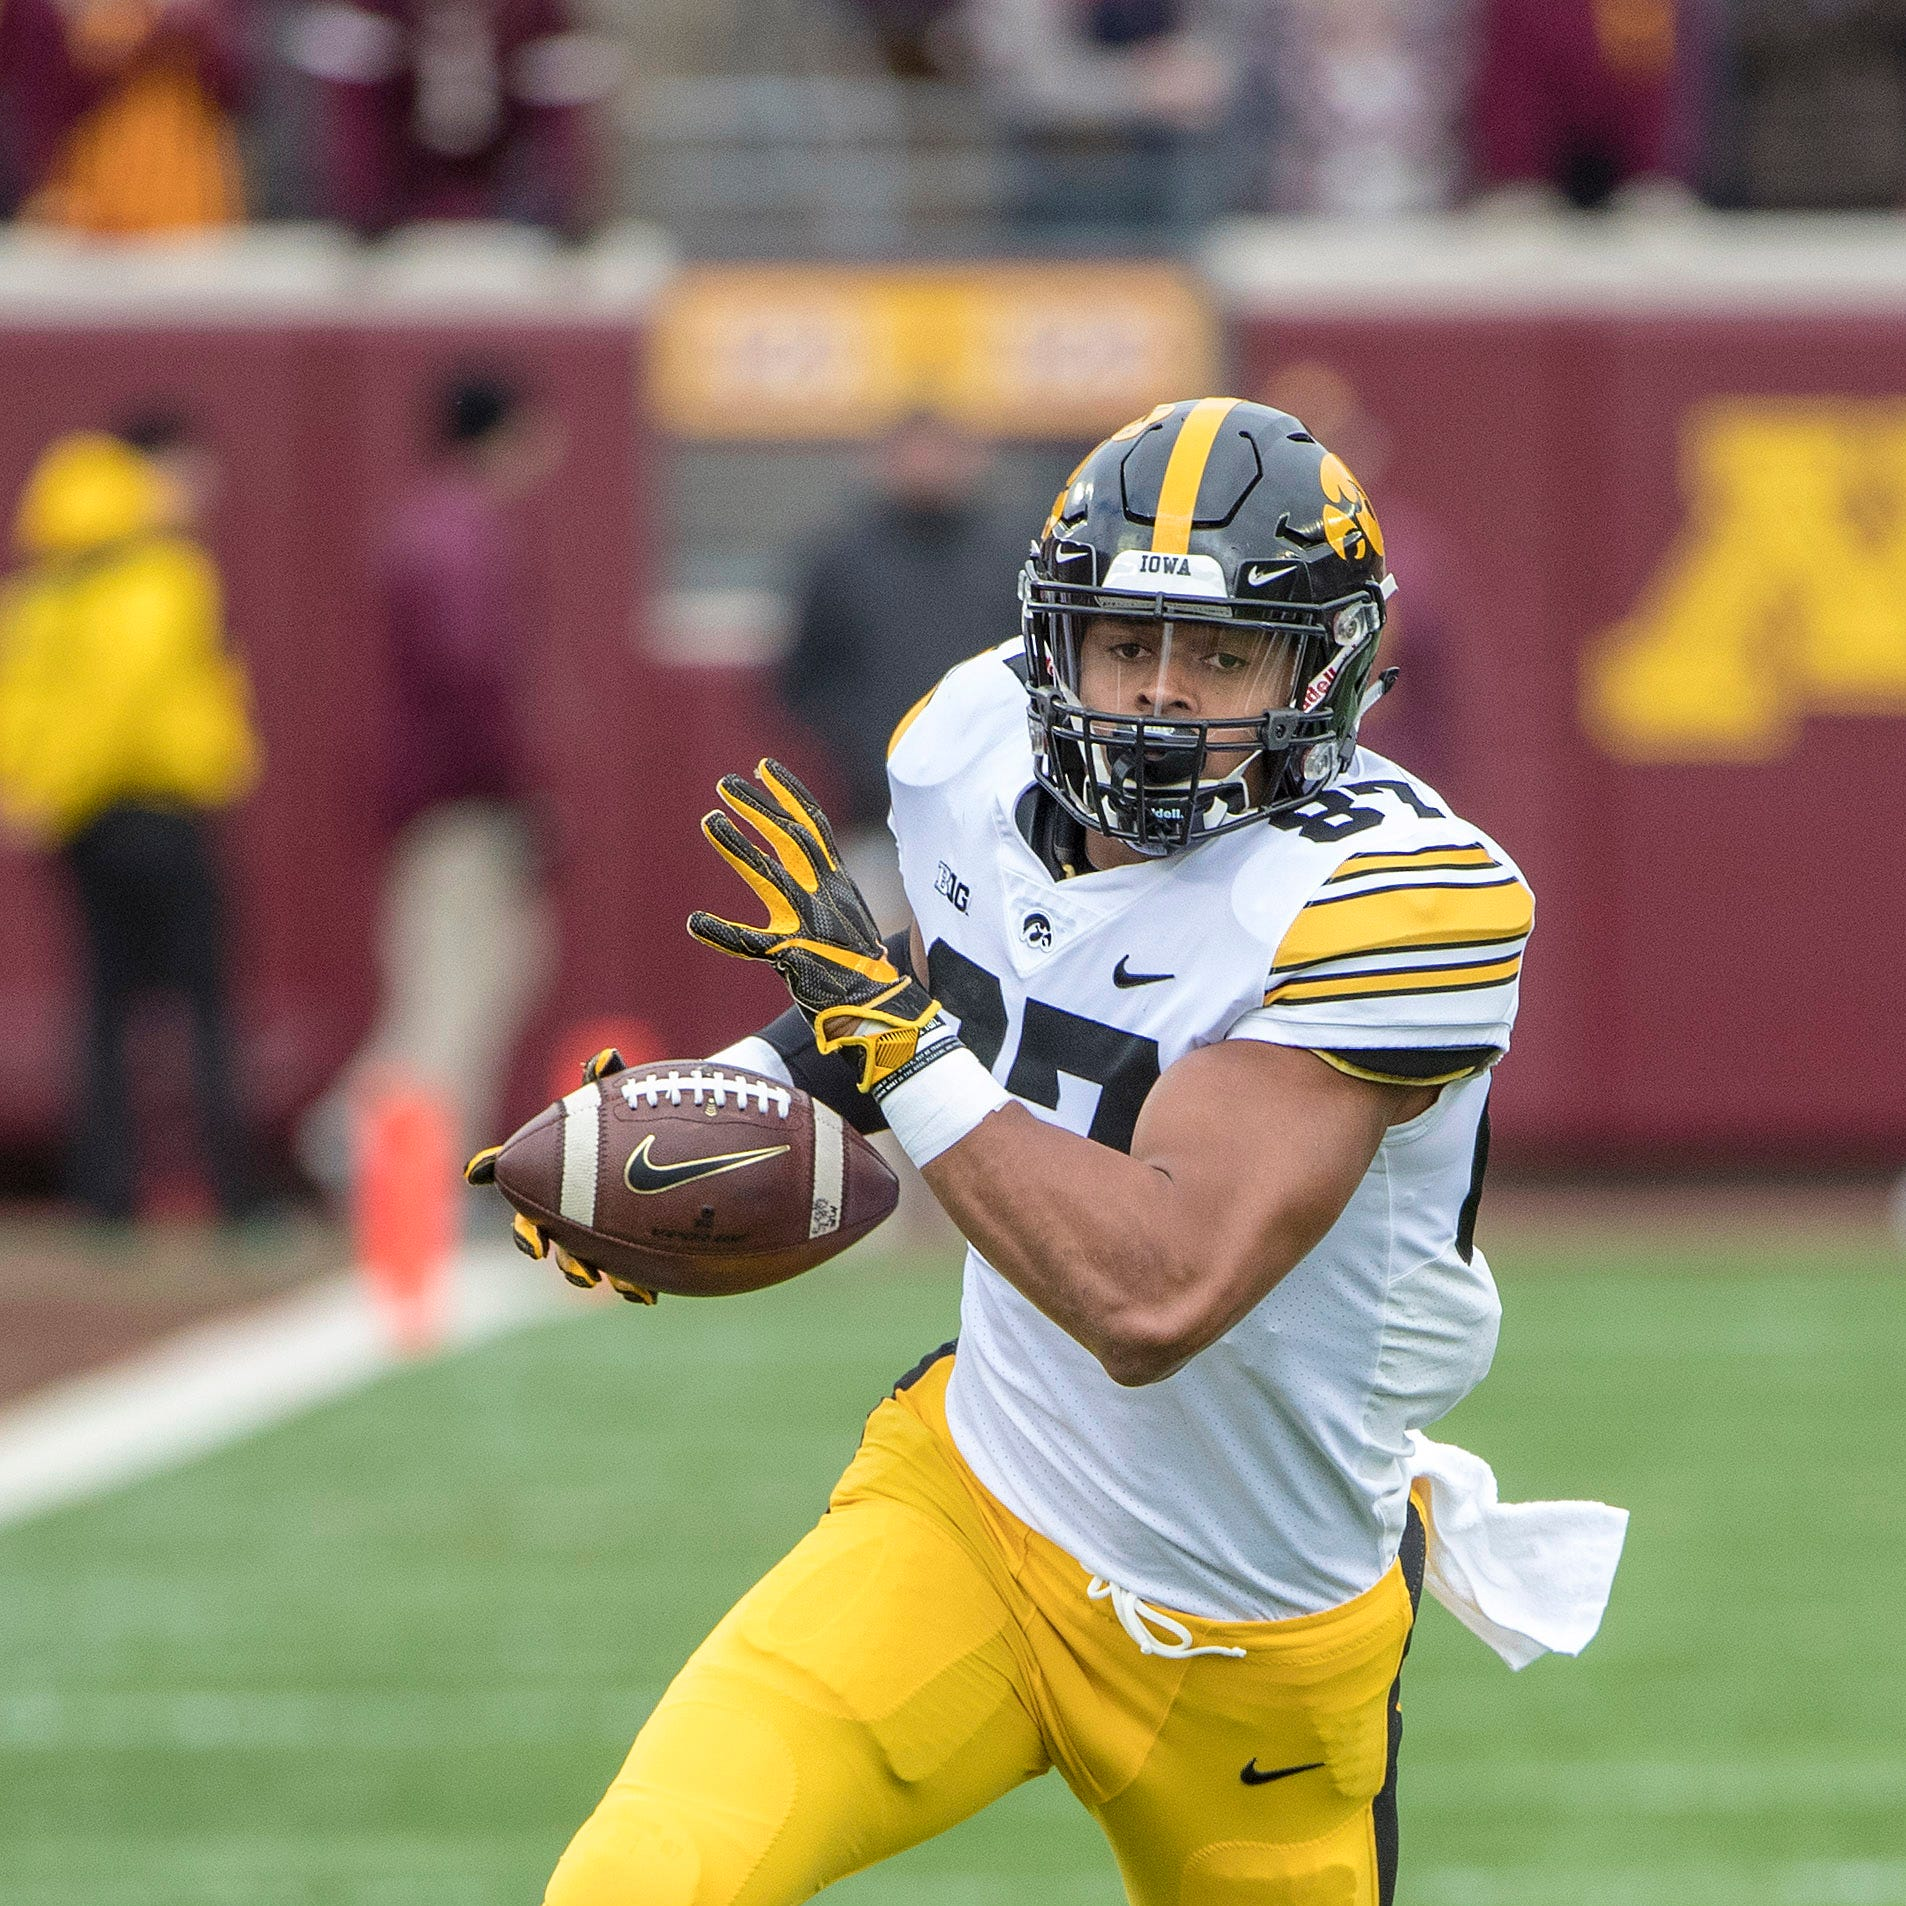 2019 NFL draft: Denver Broncos select Iowa tight end with first-round pick after trade